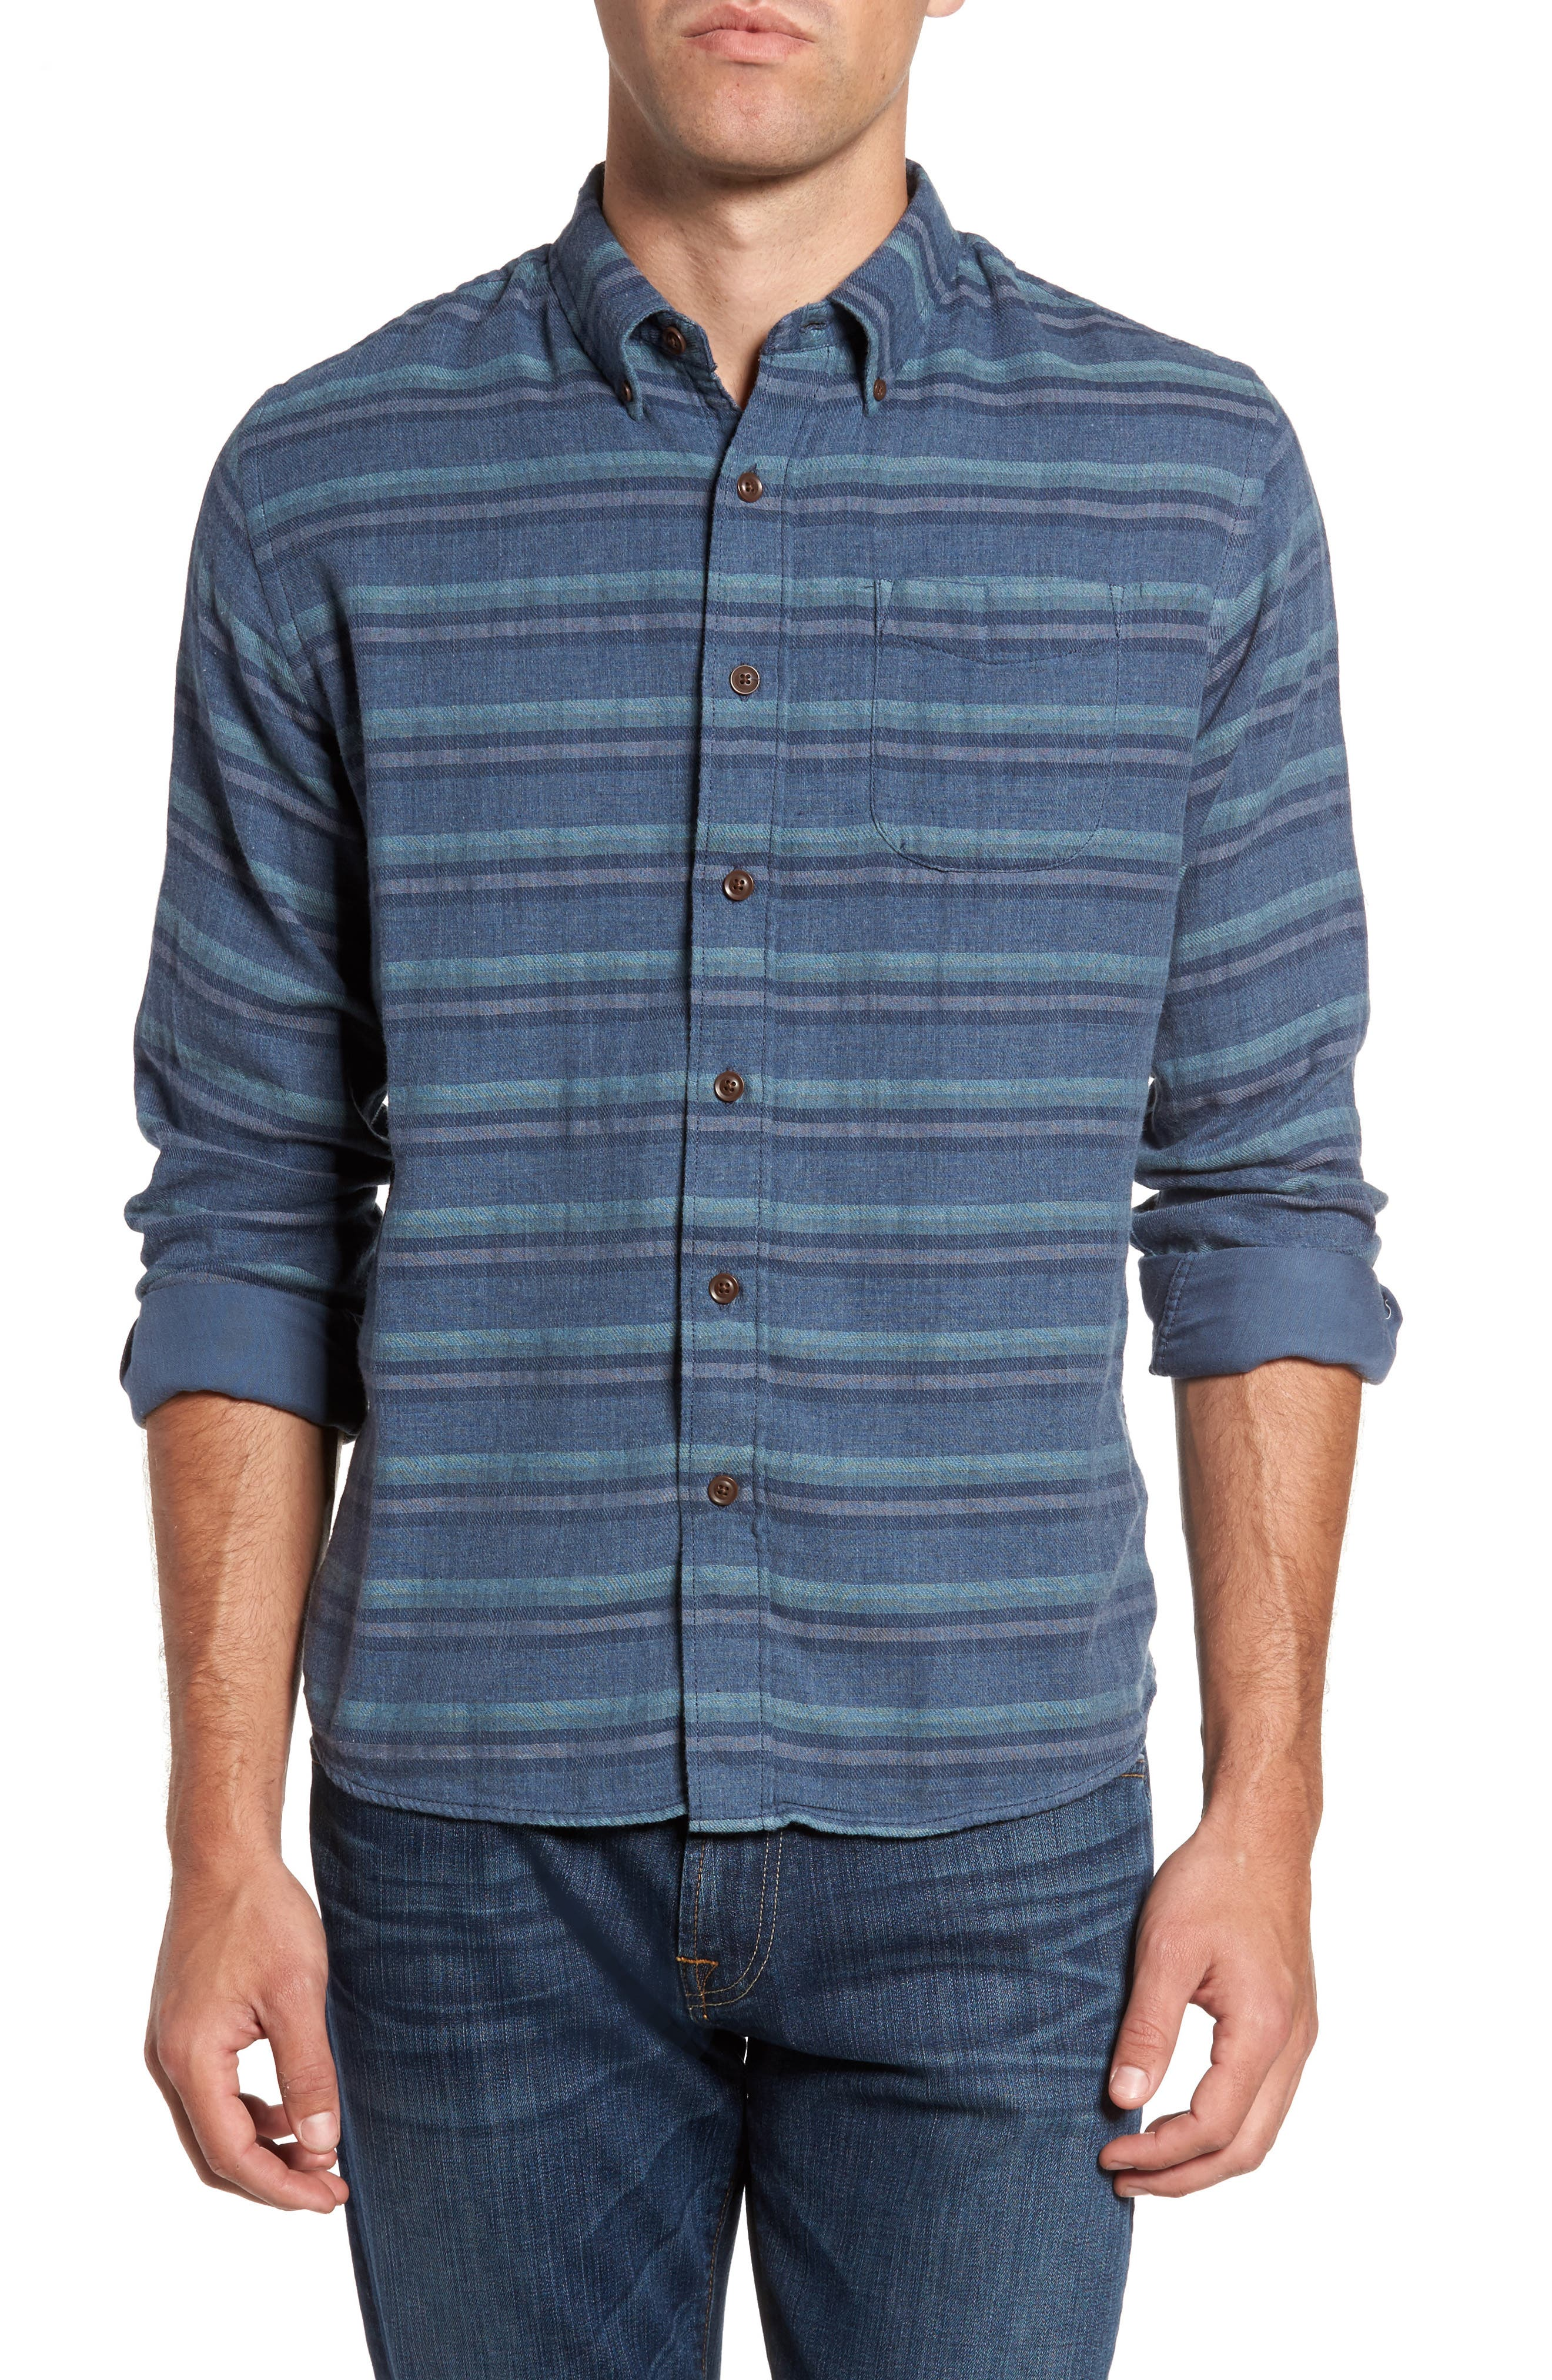 Harcourt Modern Fit Double Cloth Striped Sport Shirt,                         Main,                         color, Navy Heather Blue